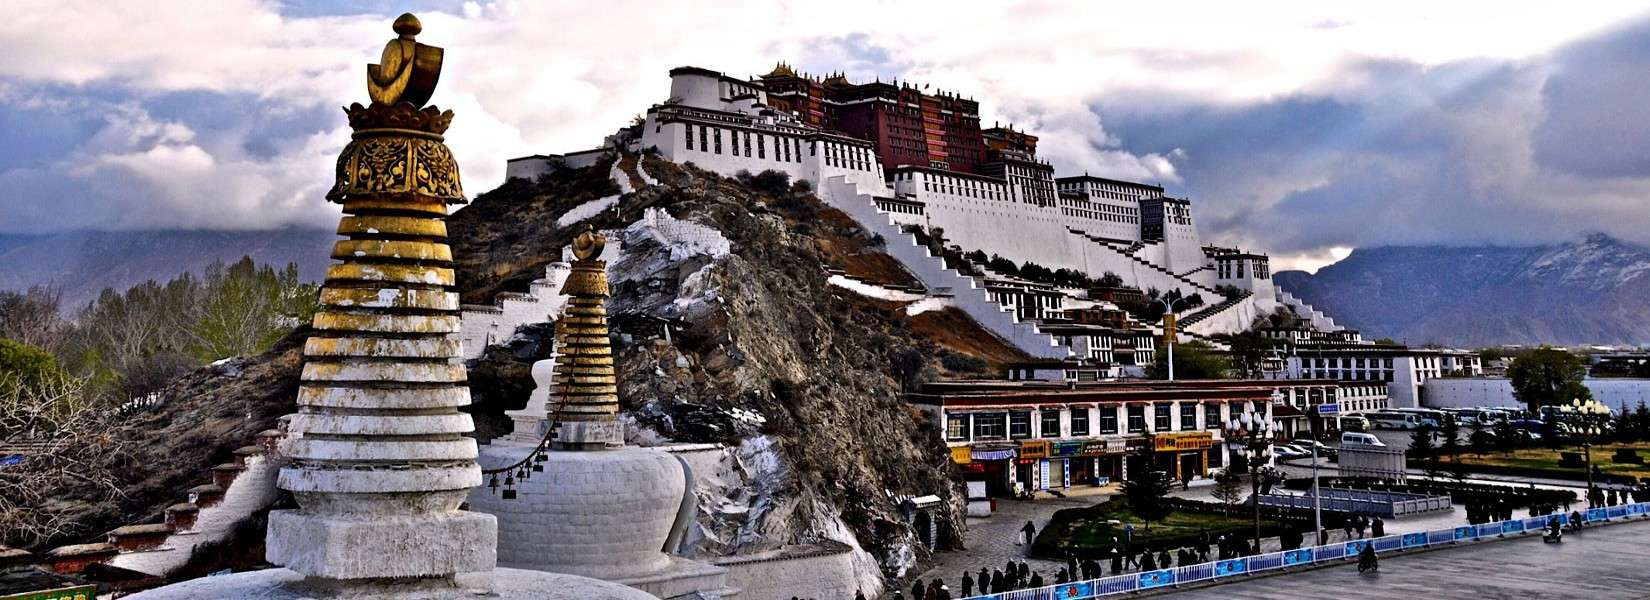 Tibet; The Roof of the World